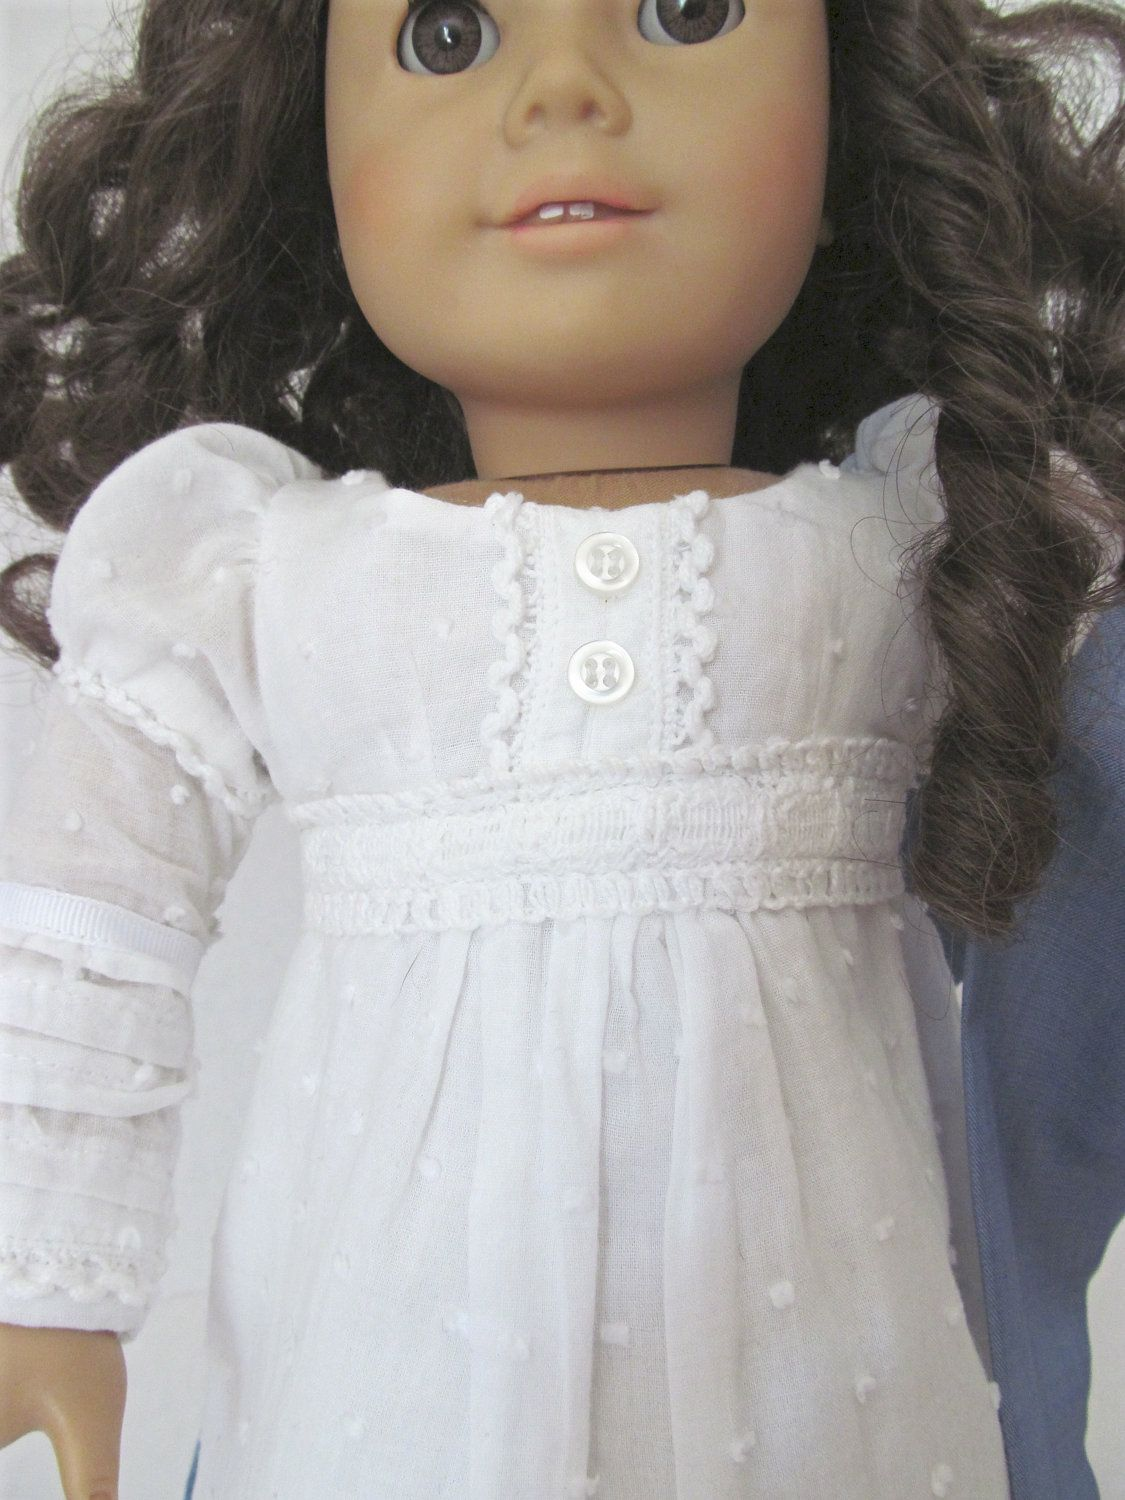 1812 Regency Dress, Wrap, American Girl Doll Clothes. via Etsy ...